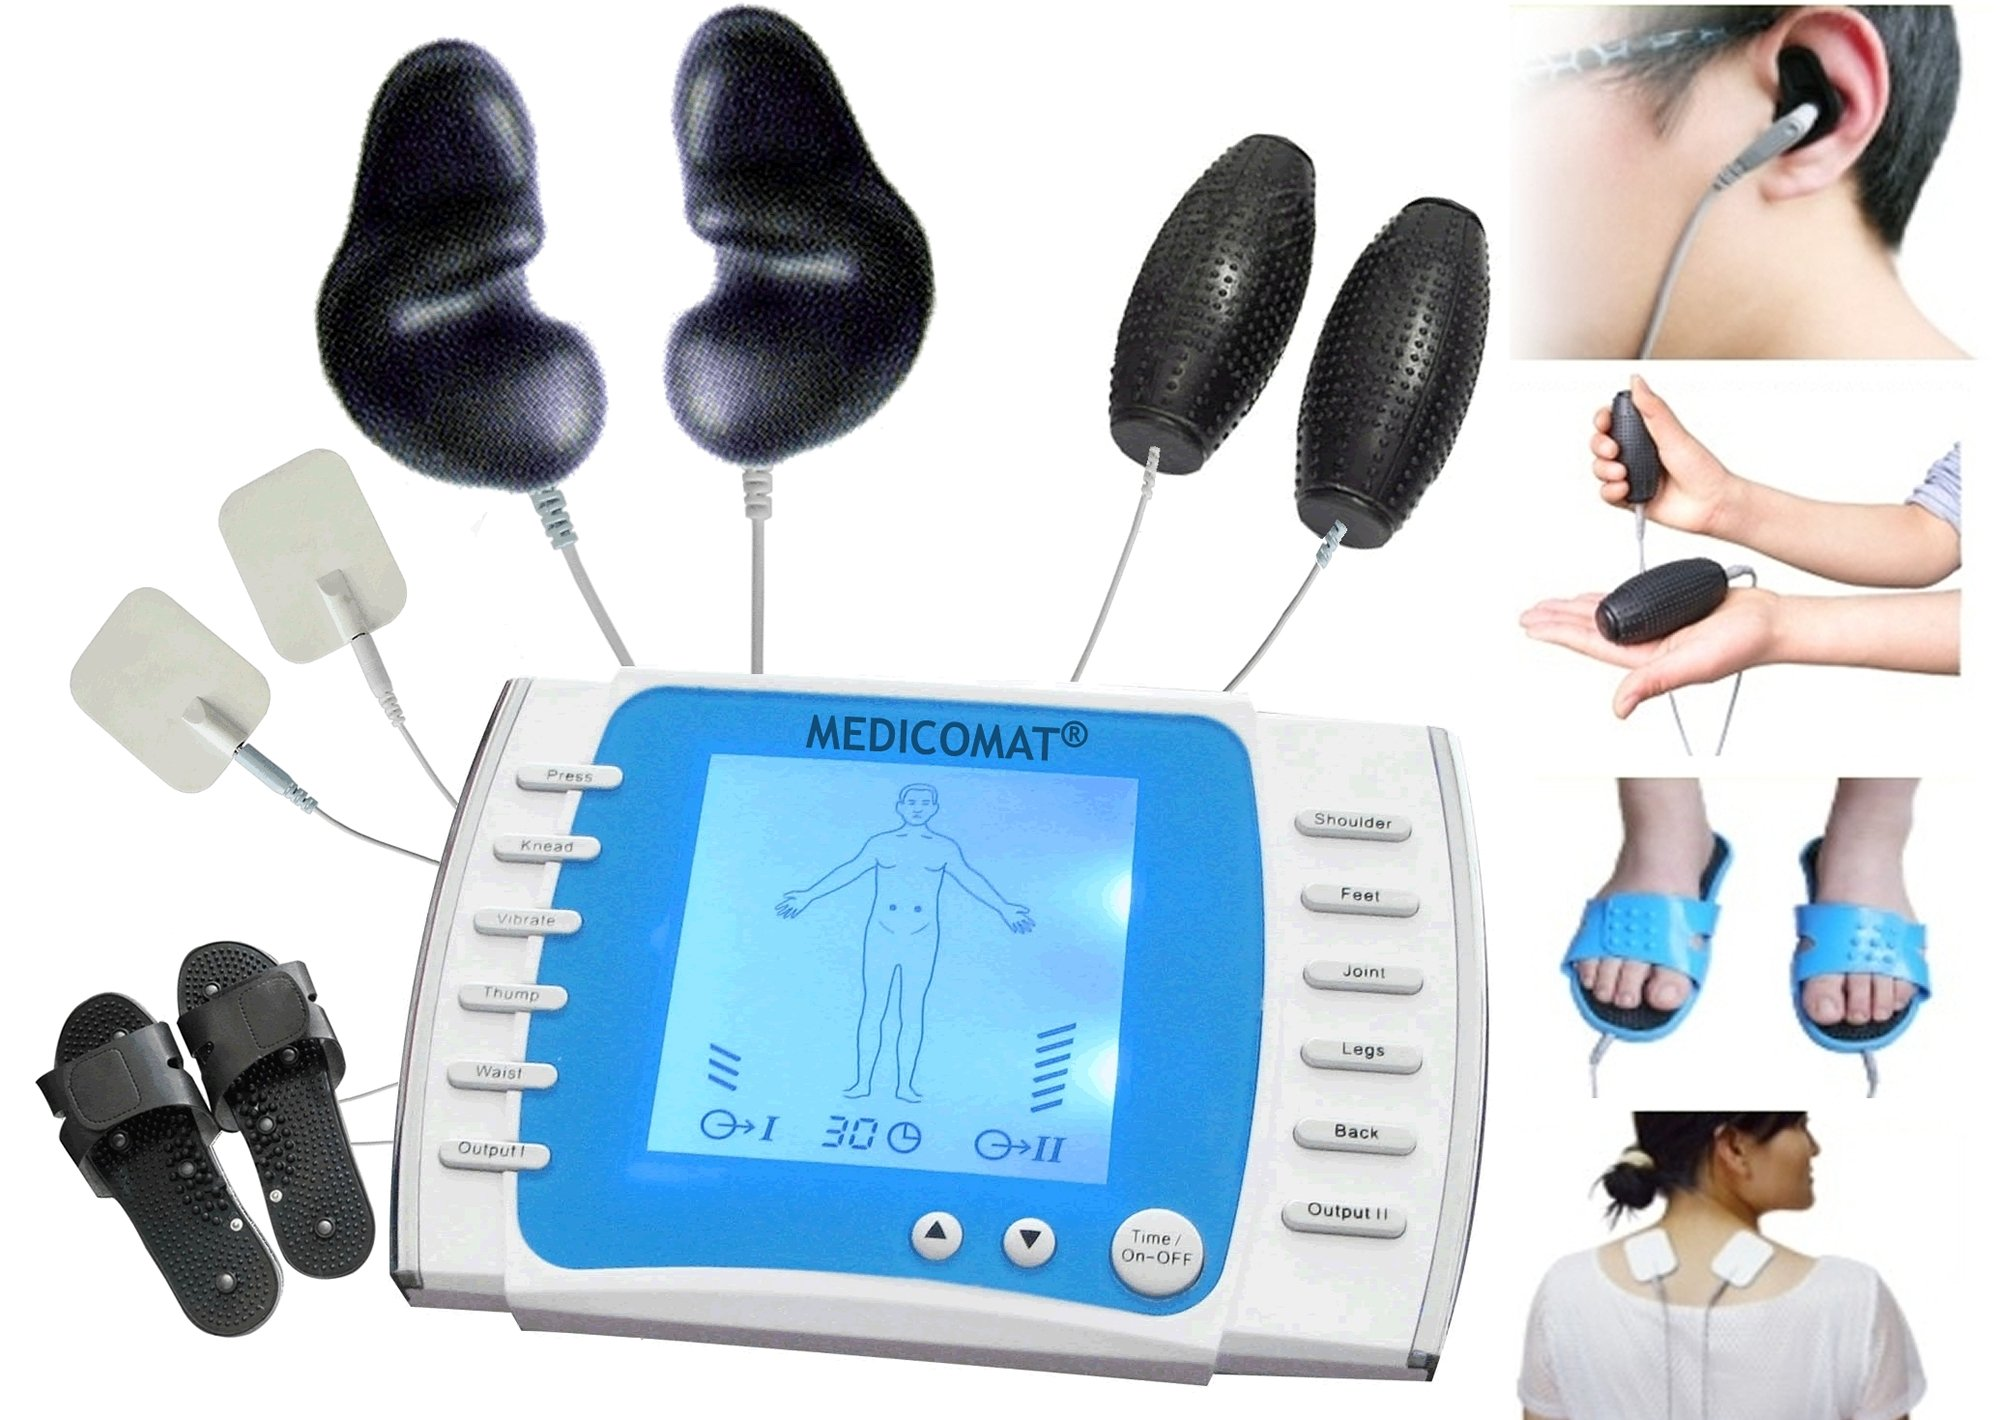 Electrotherapy Machine Medicomat-21 Therapy